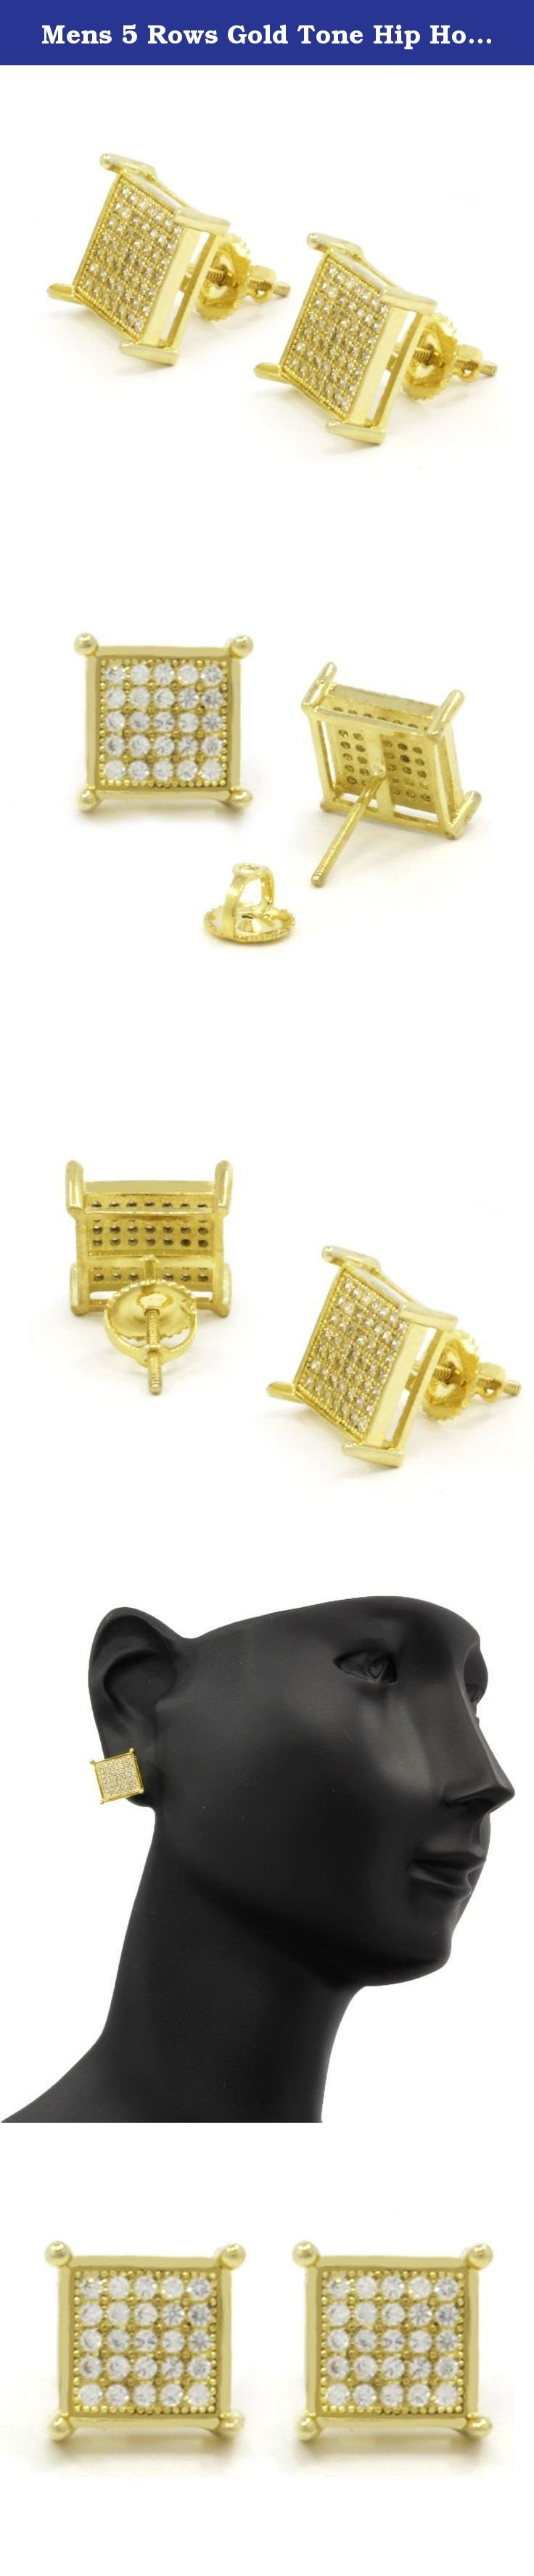 Mens 5 Rows Gold Tone Hip Hop Micro Pave TC Stud Screw Backs Earrings TC5. 8MM GOLD TONE 5 CRYSTAL LINES/ROWS EARRINGS. Top Quality CZ Screw Back Post Earrings. Earring Dimensions: (Length/Width) 8mm x 8mm. Attention: Please keep in mind that this item is not Real Gold.